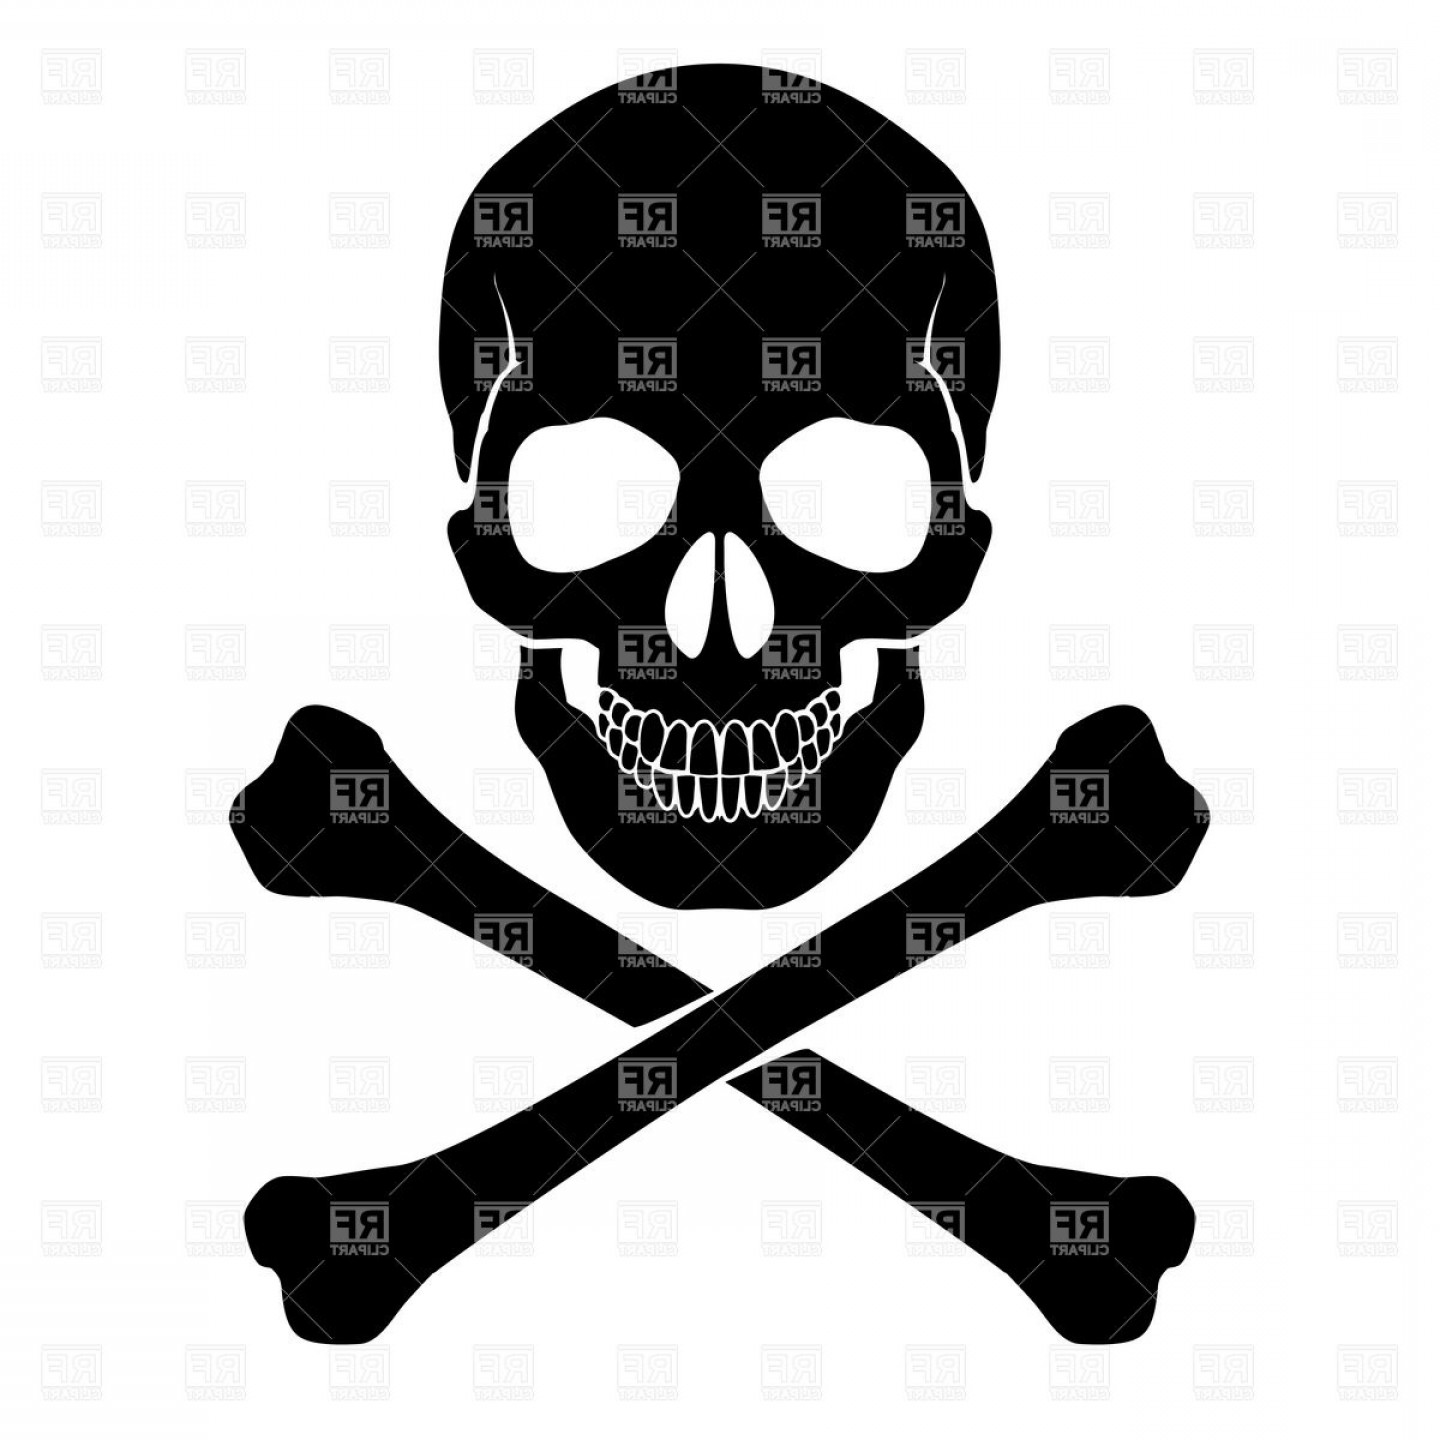 Skull ND Crossbones Vector: Skull And Crossbones Danger Warning Vector Clipart